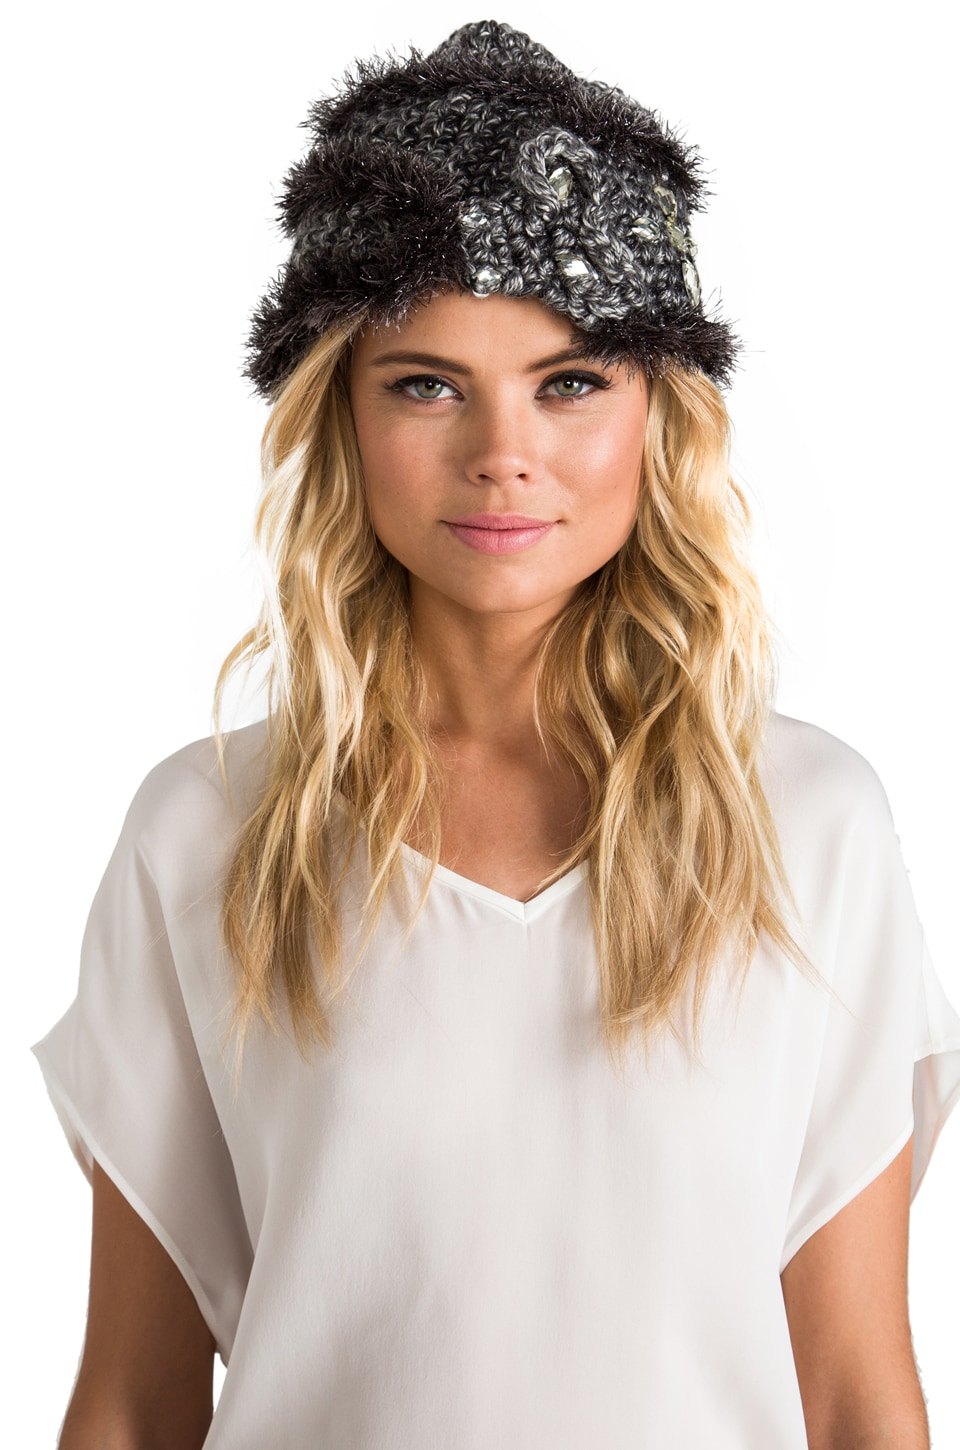 Anna Sui Jeweled Animal Accessories Hat in Grey Metallic